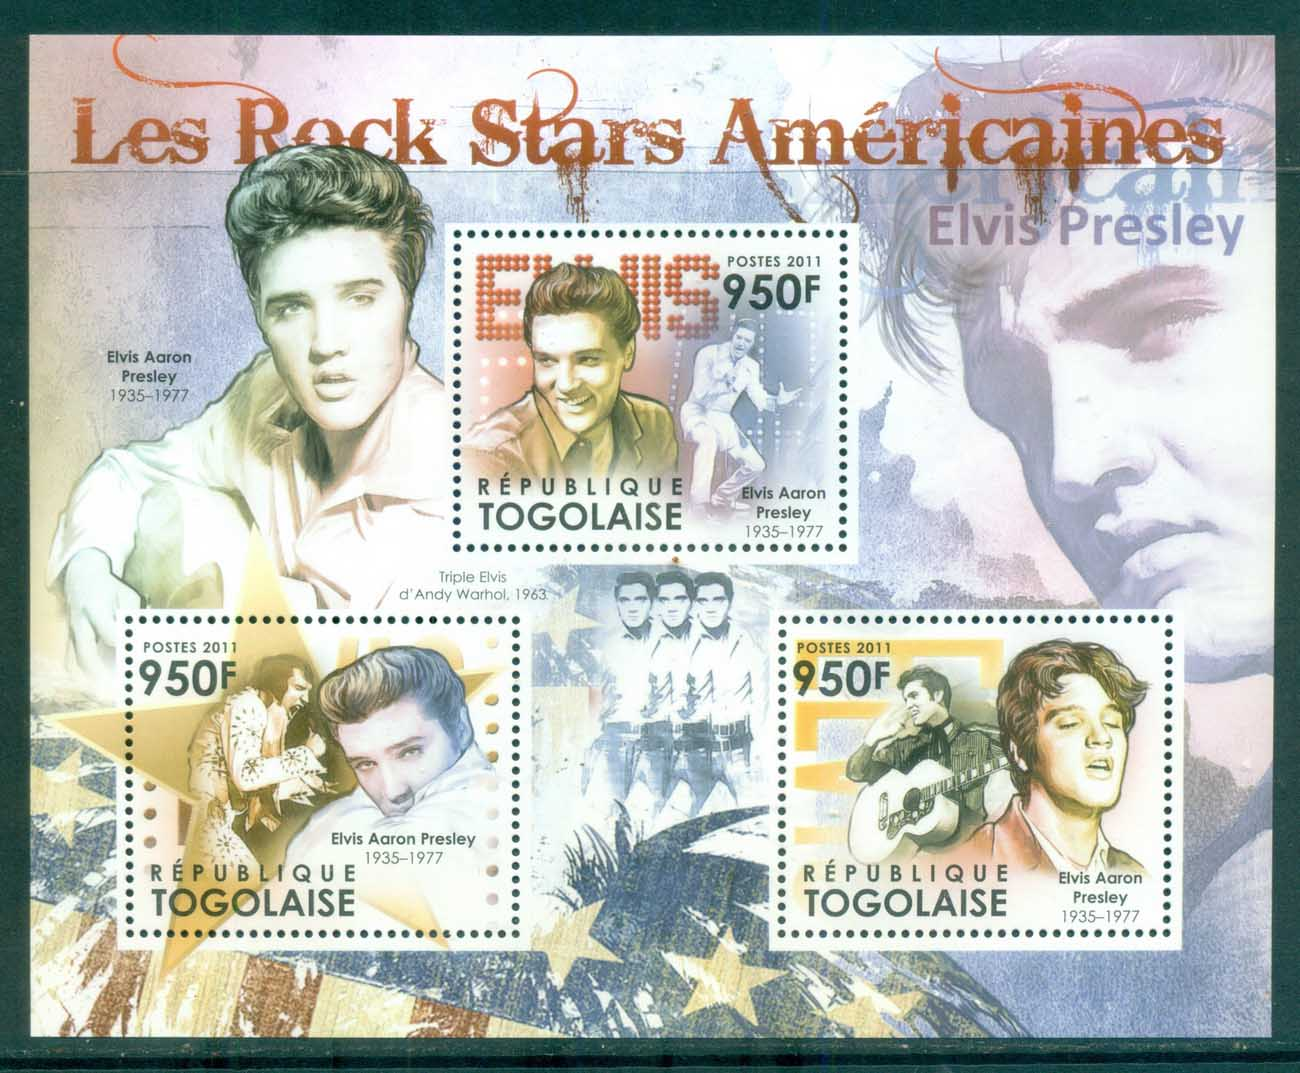 Togo 2011 Famous People, Music, Male, Elvis Presley MS MUH TG11520a